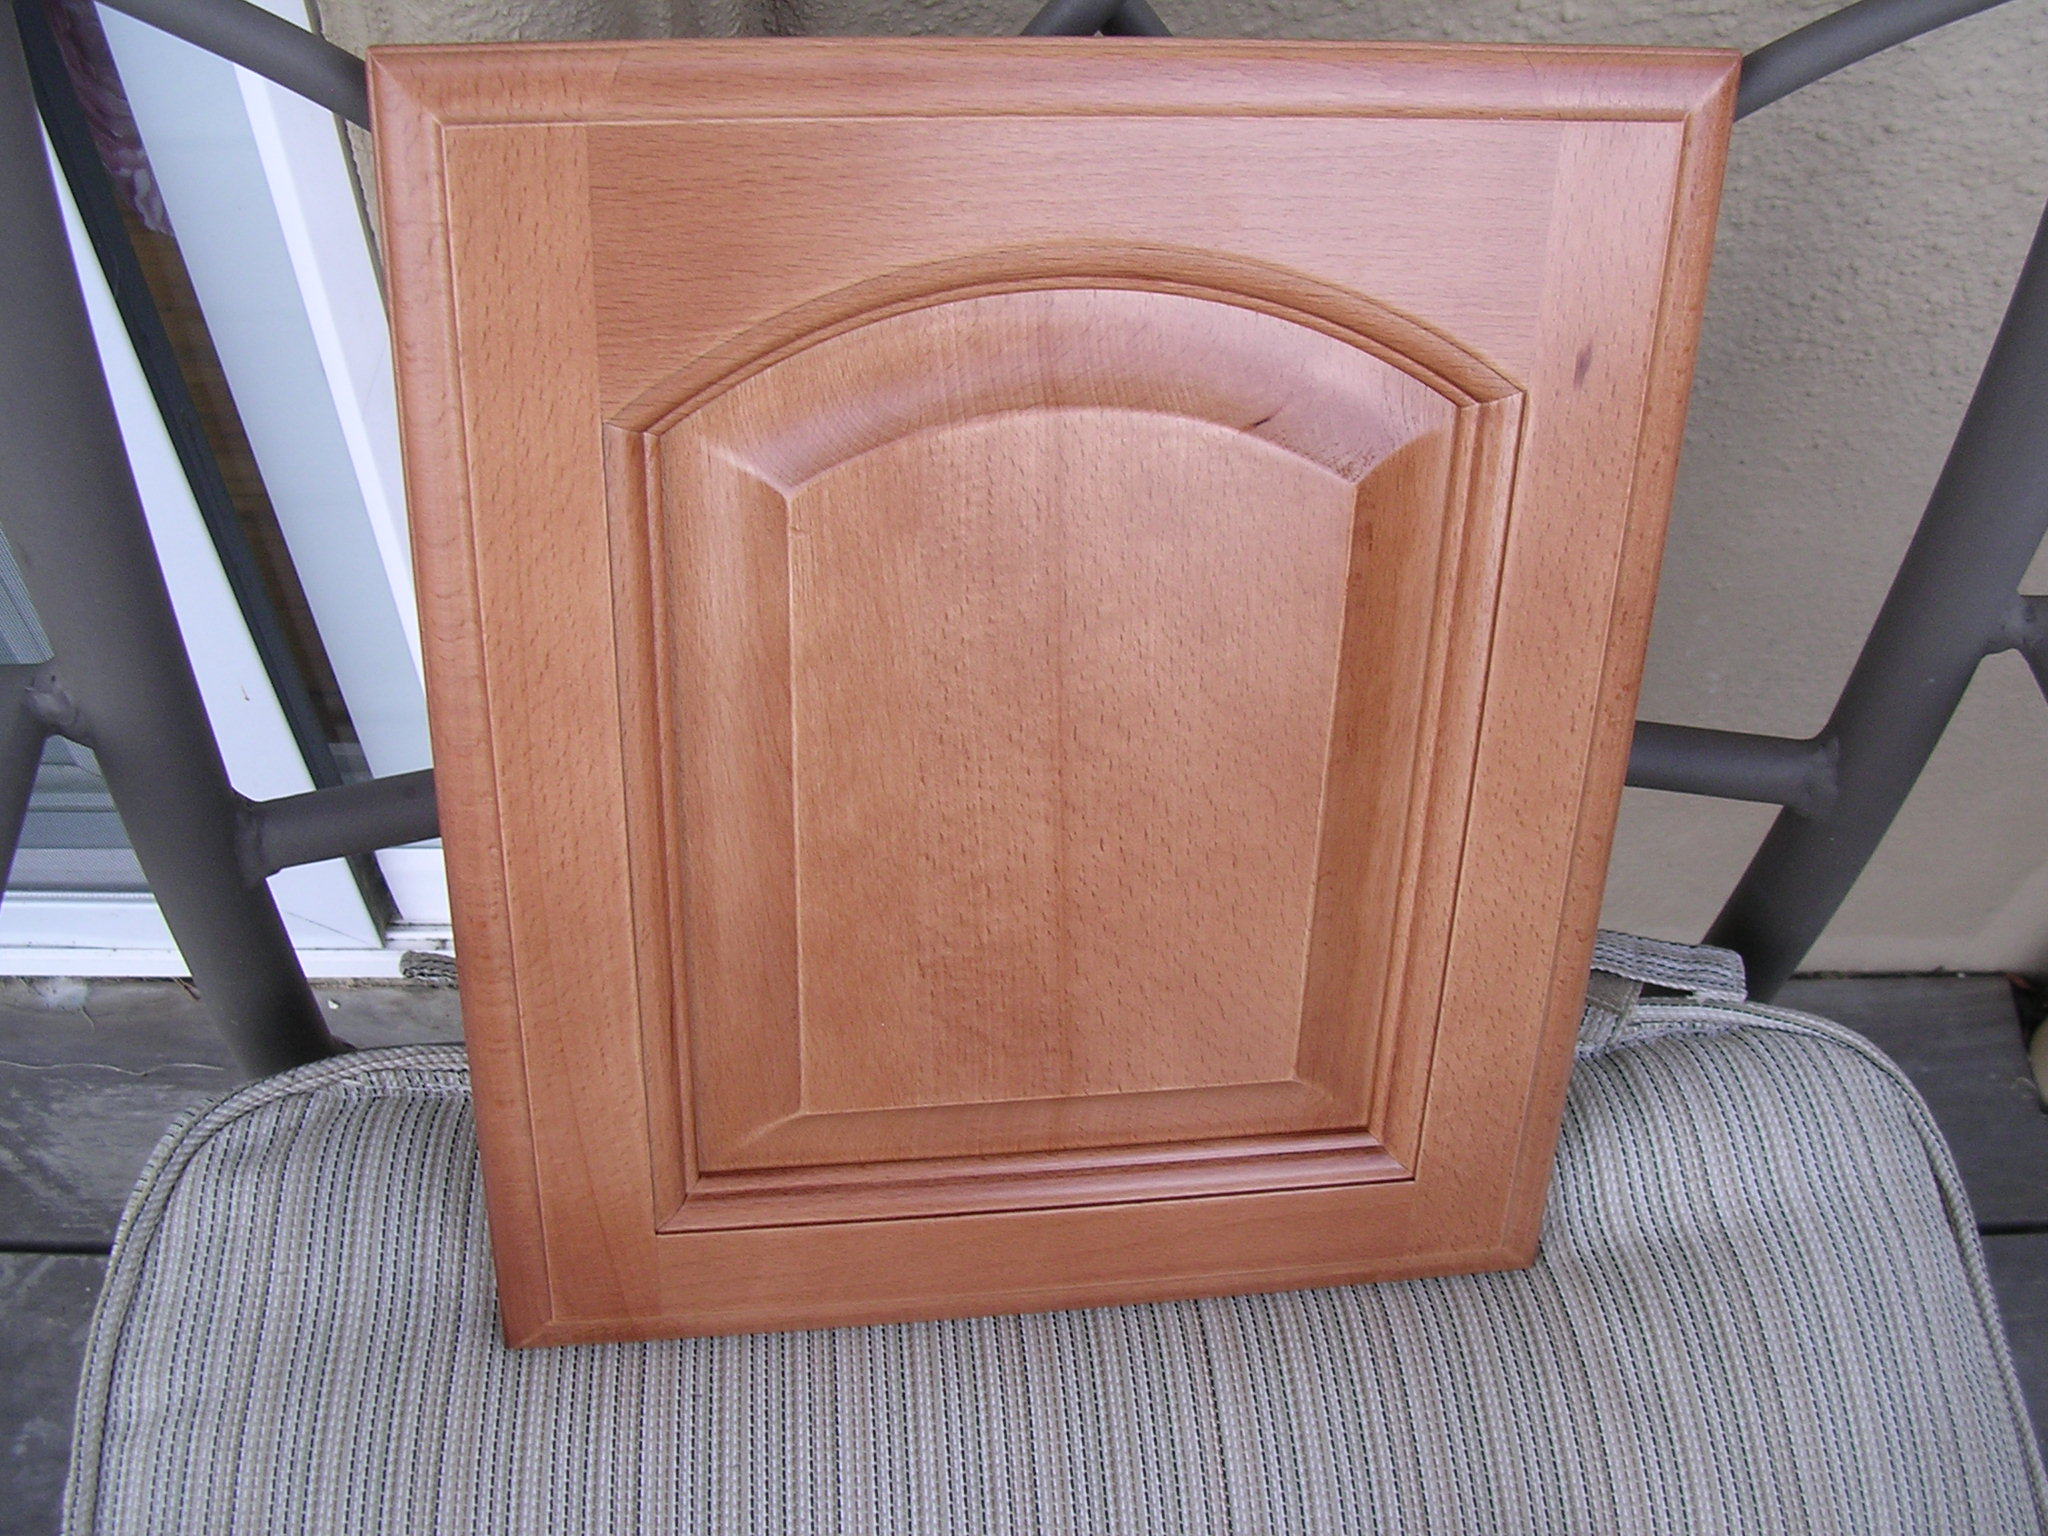 rta cabinet broker 5g light coffee colored beech arched door